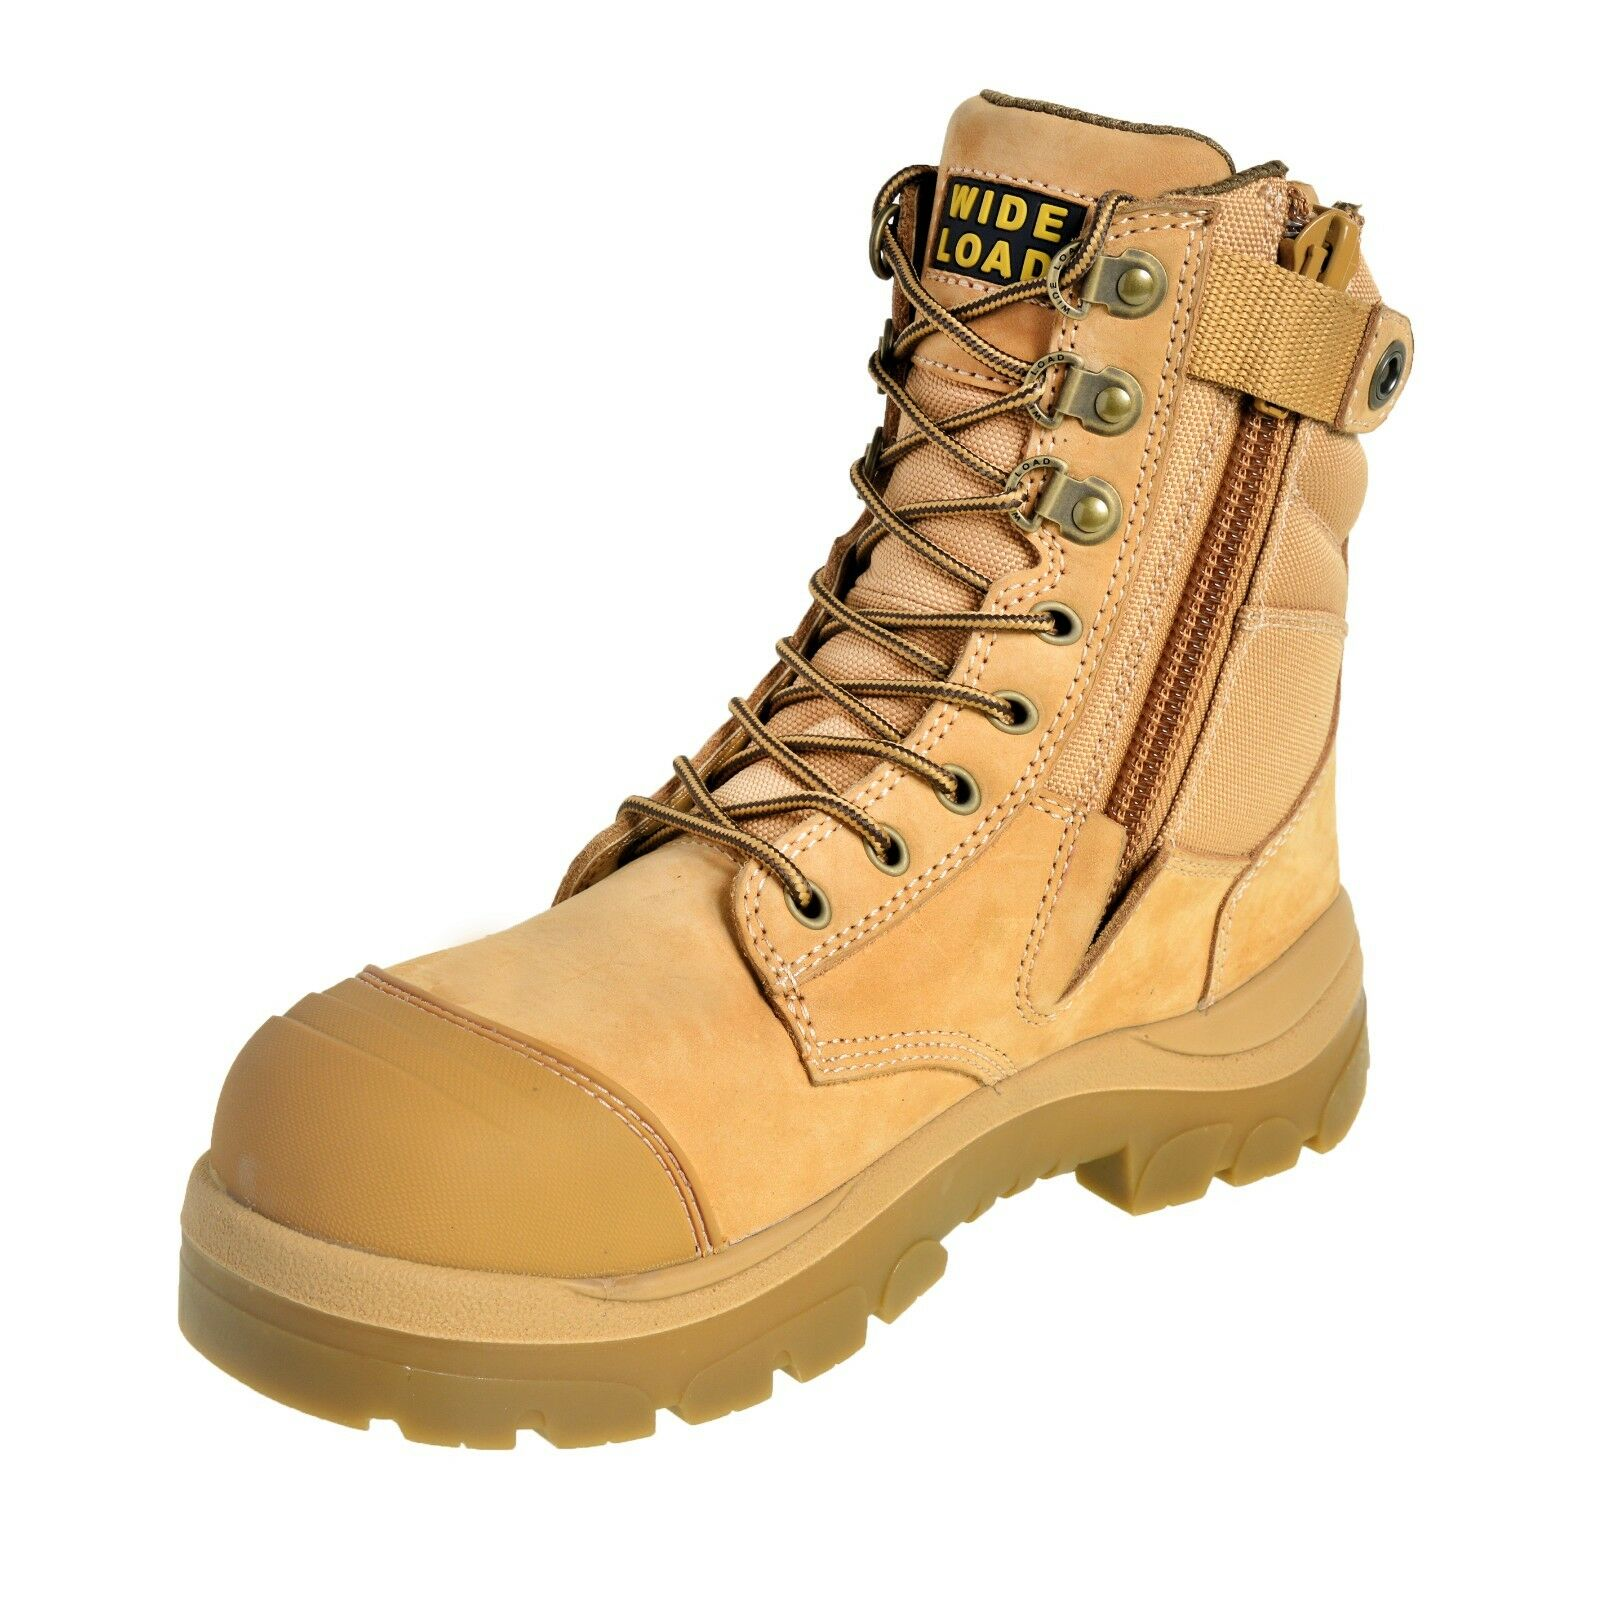 Wide Load 'S3' 'S3' 'S3' 890WZ  Extra Wide, Steel Cap Safety Stivali. Wheat Nubuck. Side Zip 2452f9